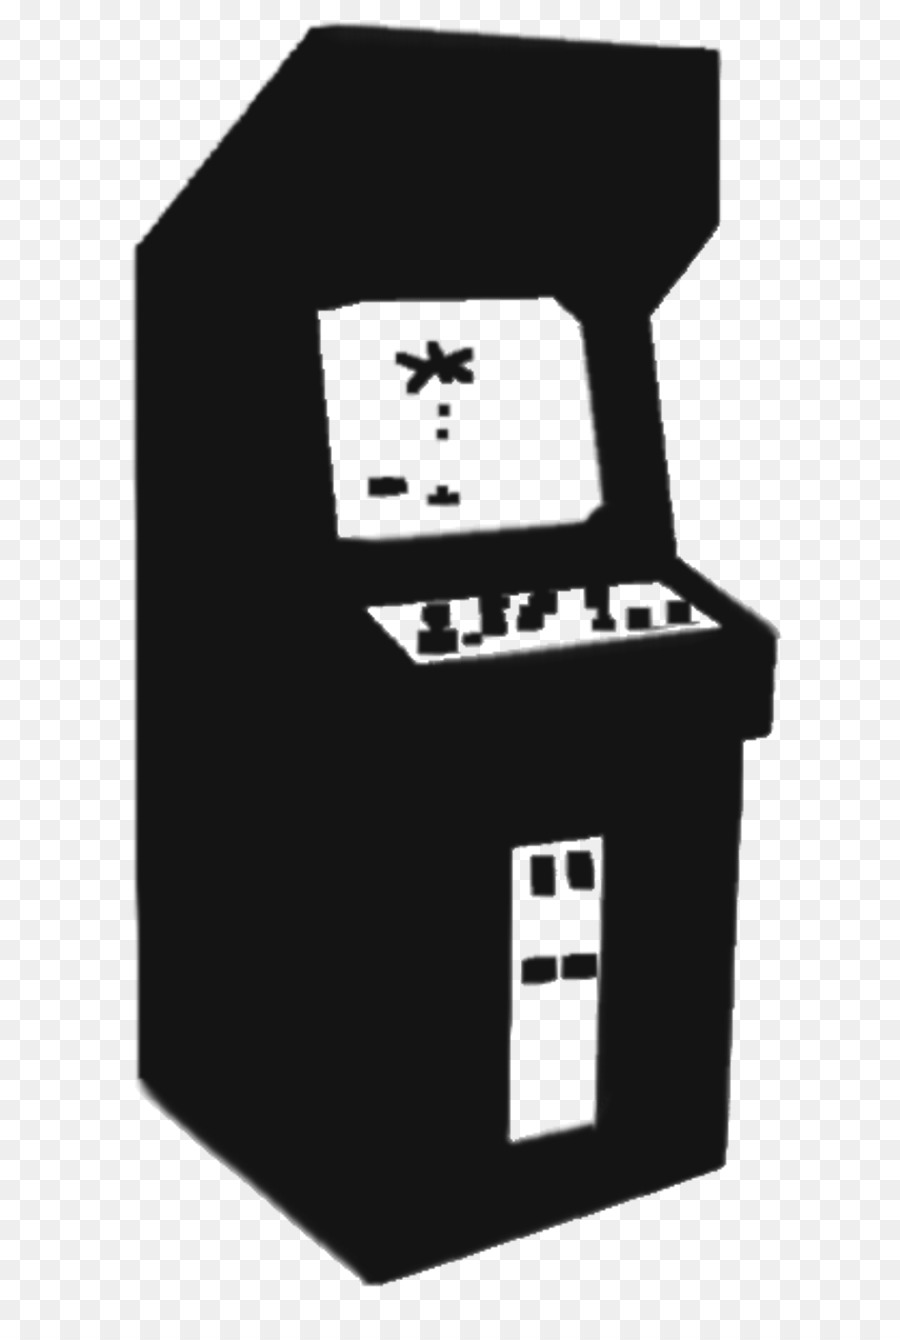 Arcade game clipart 4 » Clipart Station.